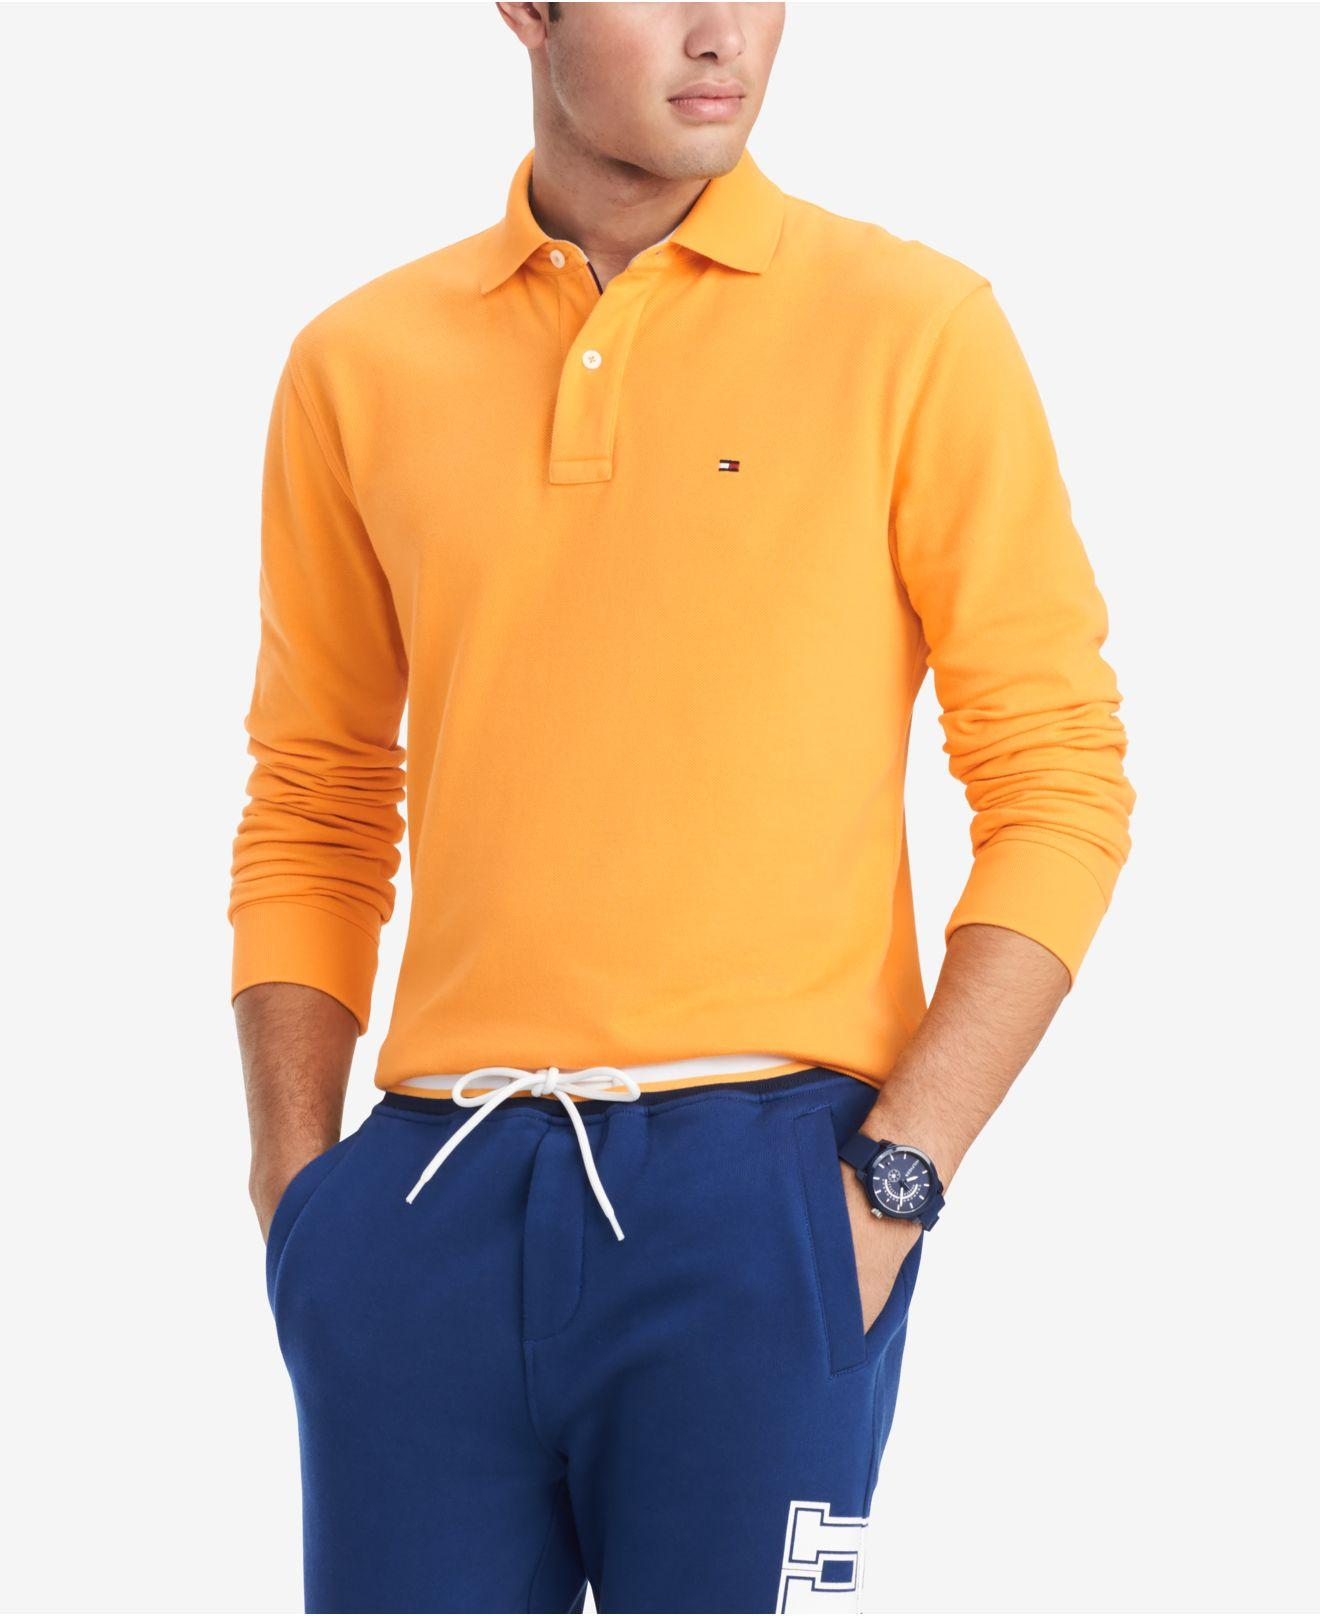 30244005 Lyst - Tommy Hilfiger Classic Fit Long Sleeve Polo Shirt, Created ...